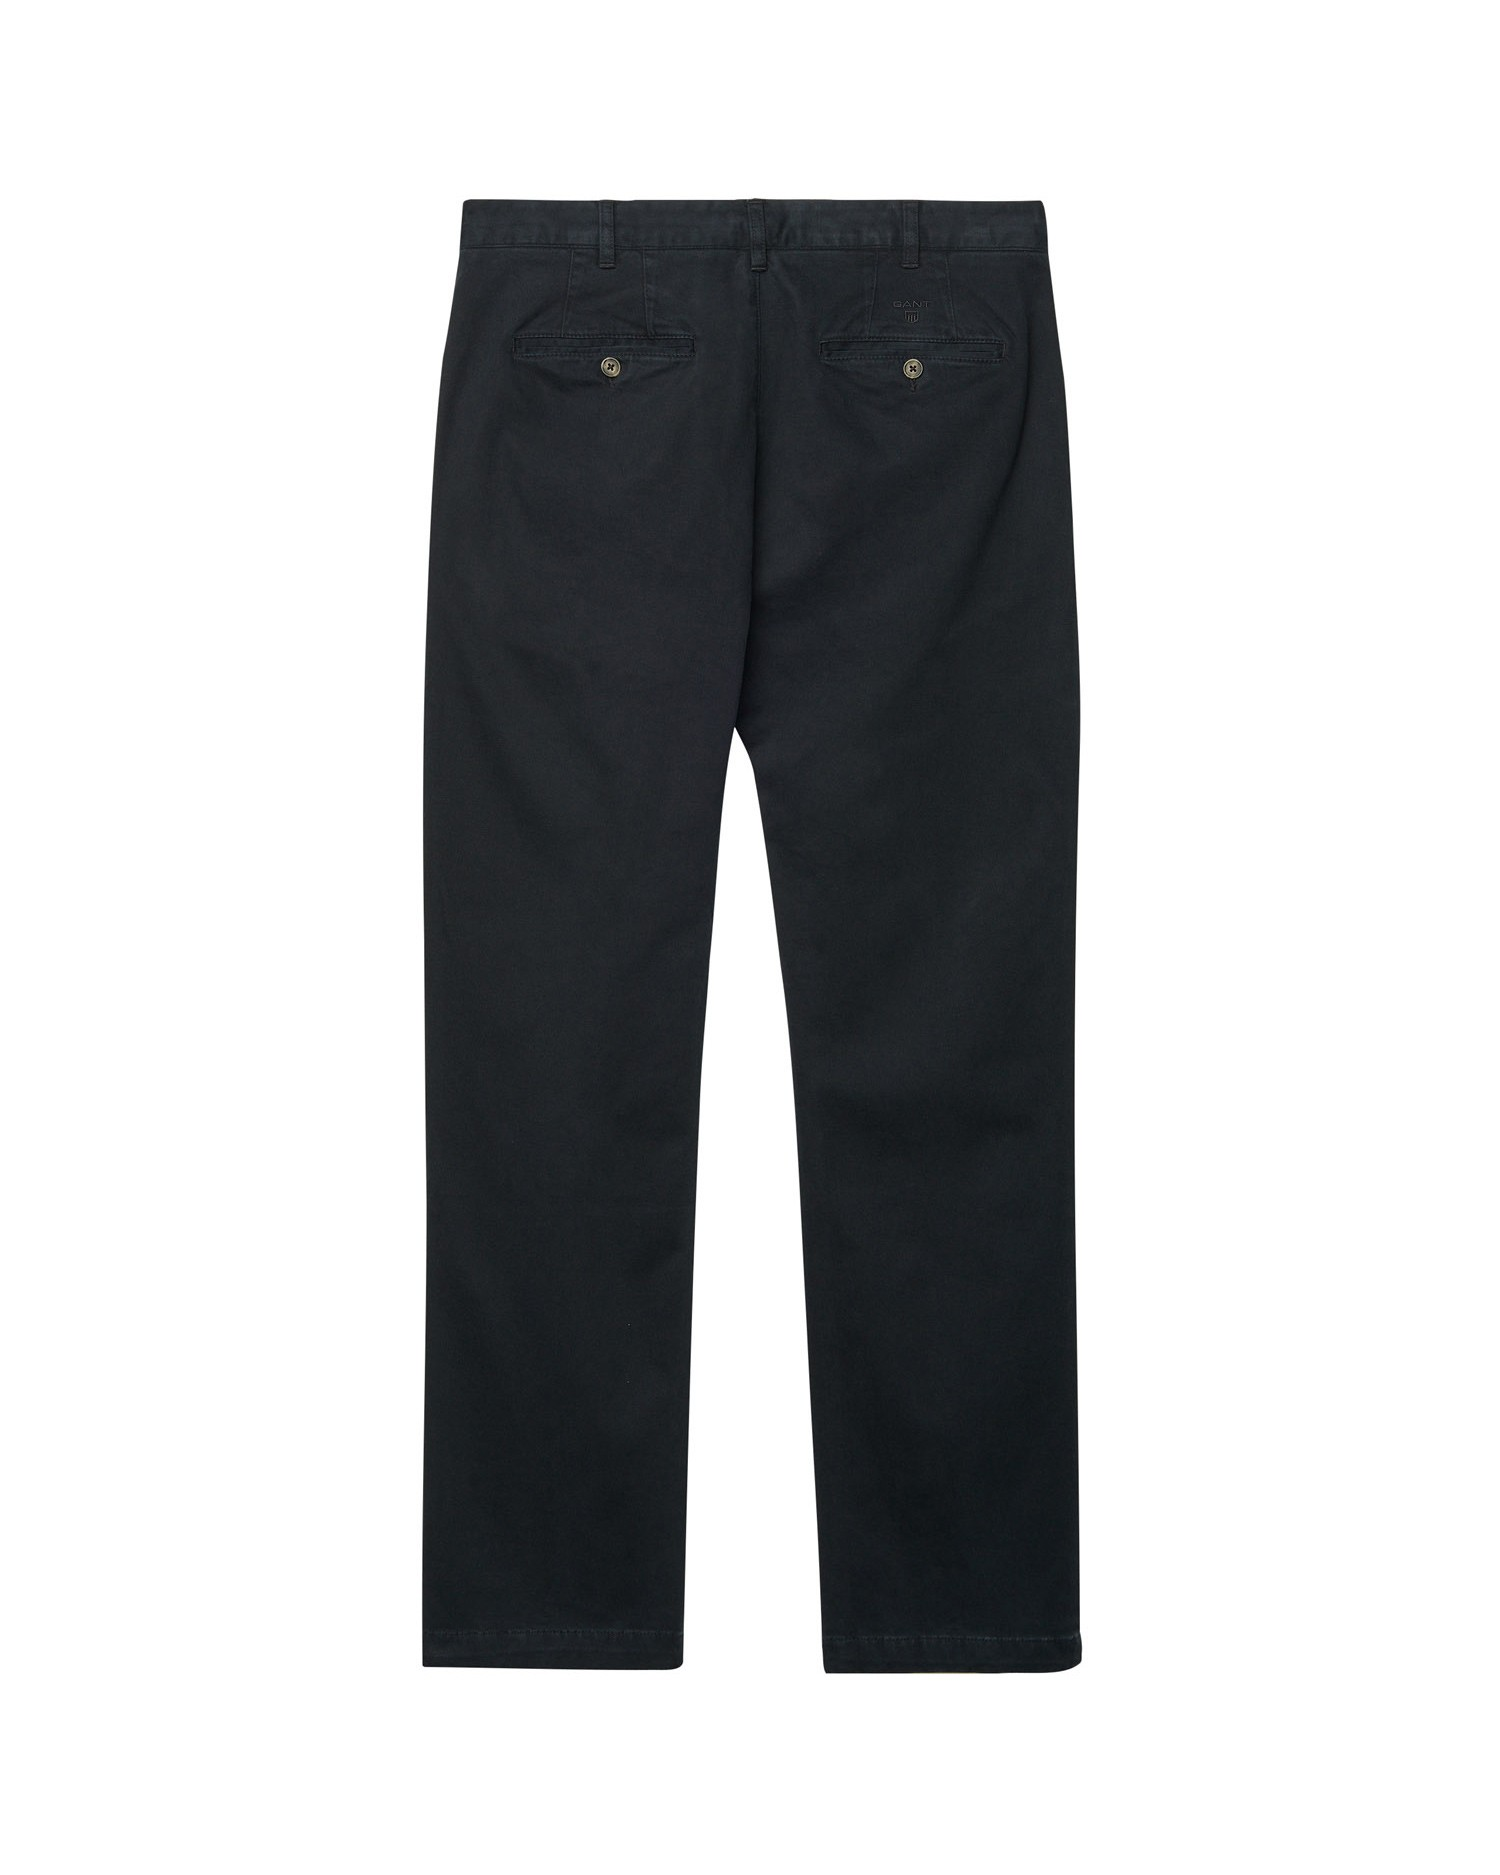 GANT Men's Comfort Super Chino - 1503950